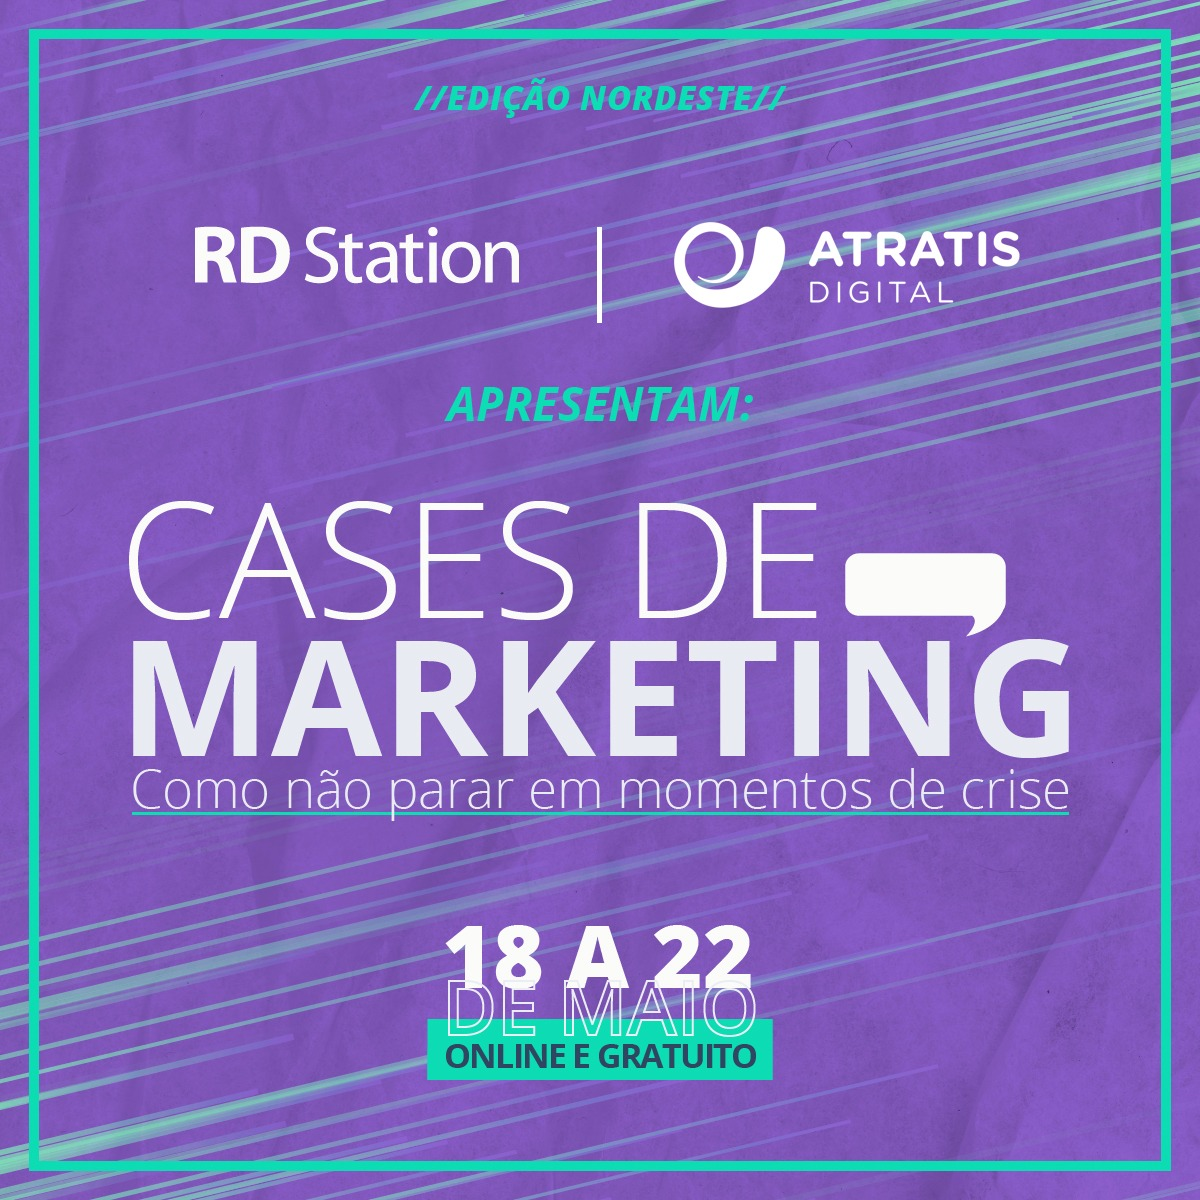 RD Cases de marketing Nordeste